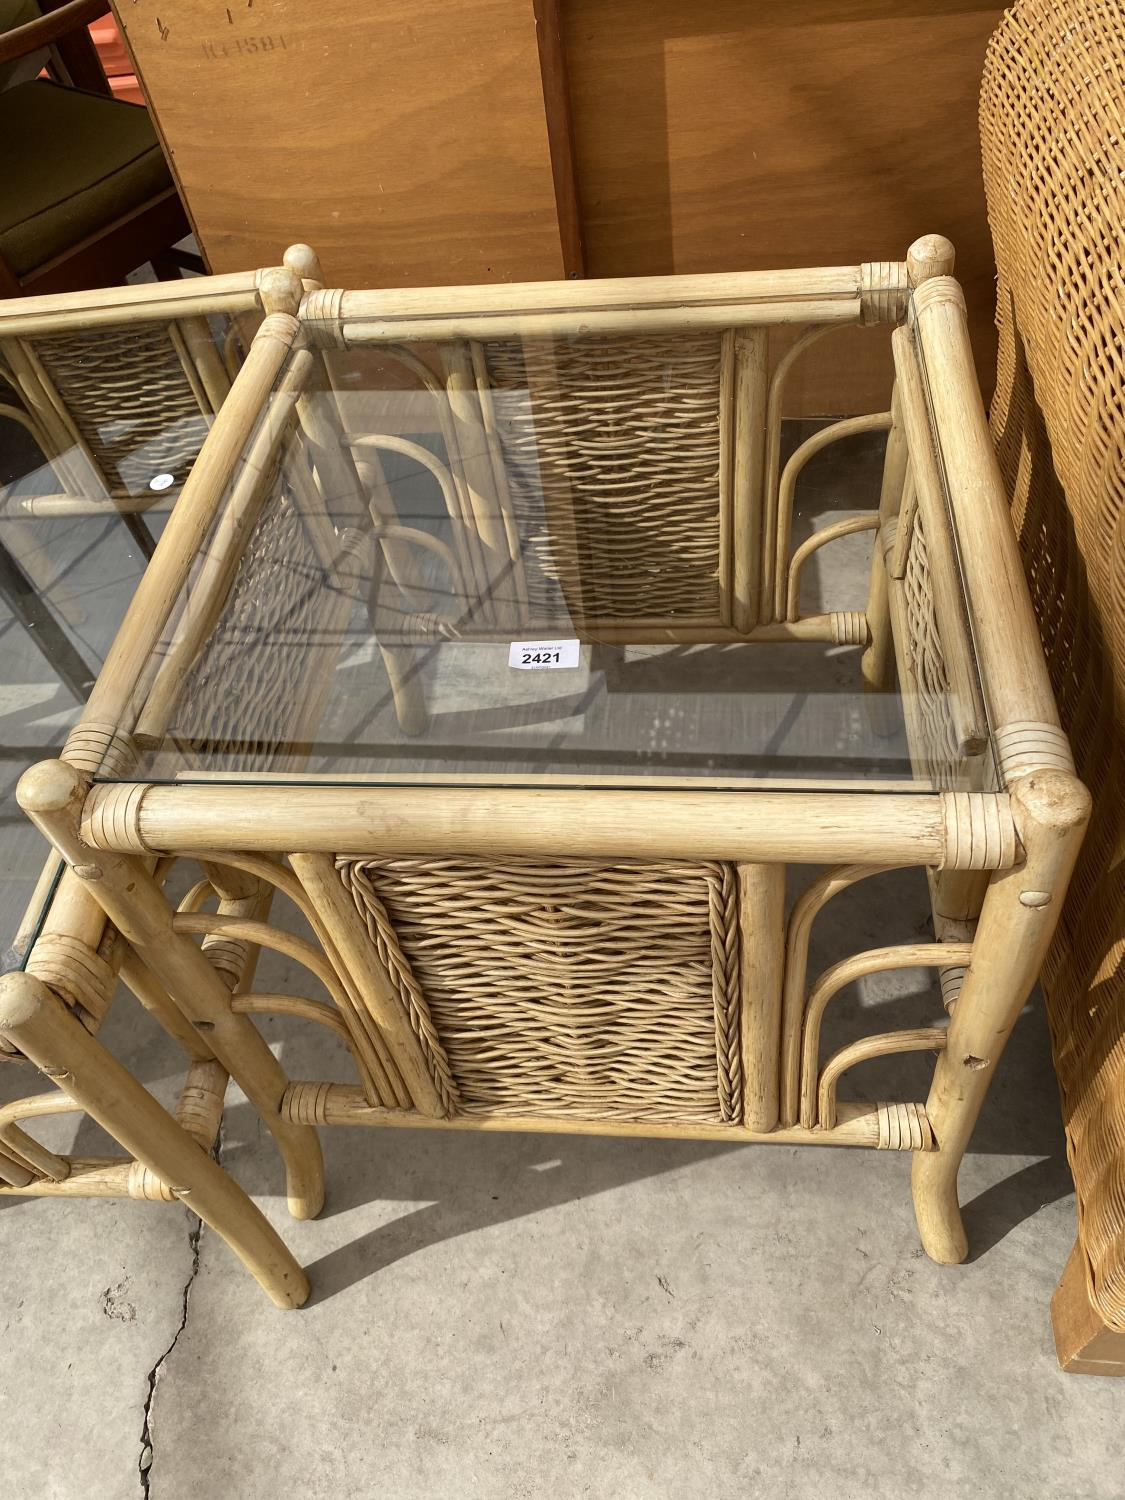 TWO BAMBOO AND WICKER COFFEE TABLES WITH GLASS TOPS - Image 2 of 3